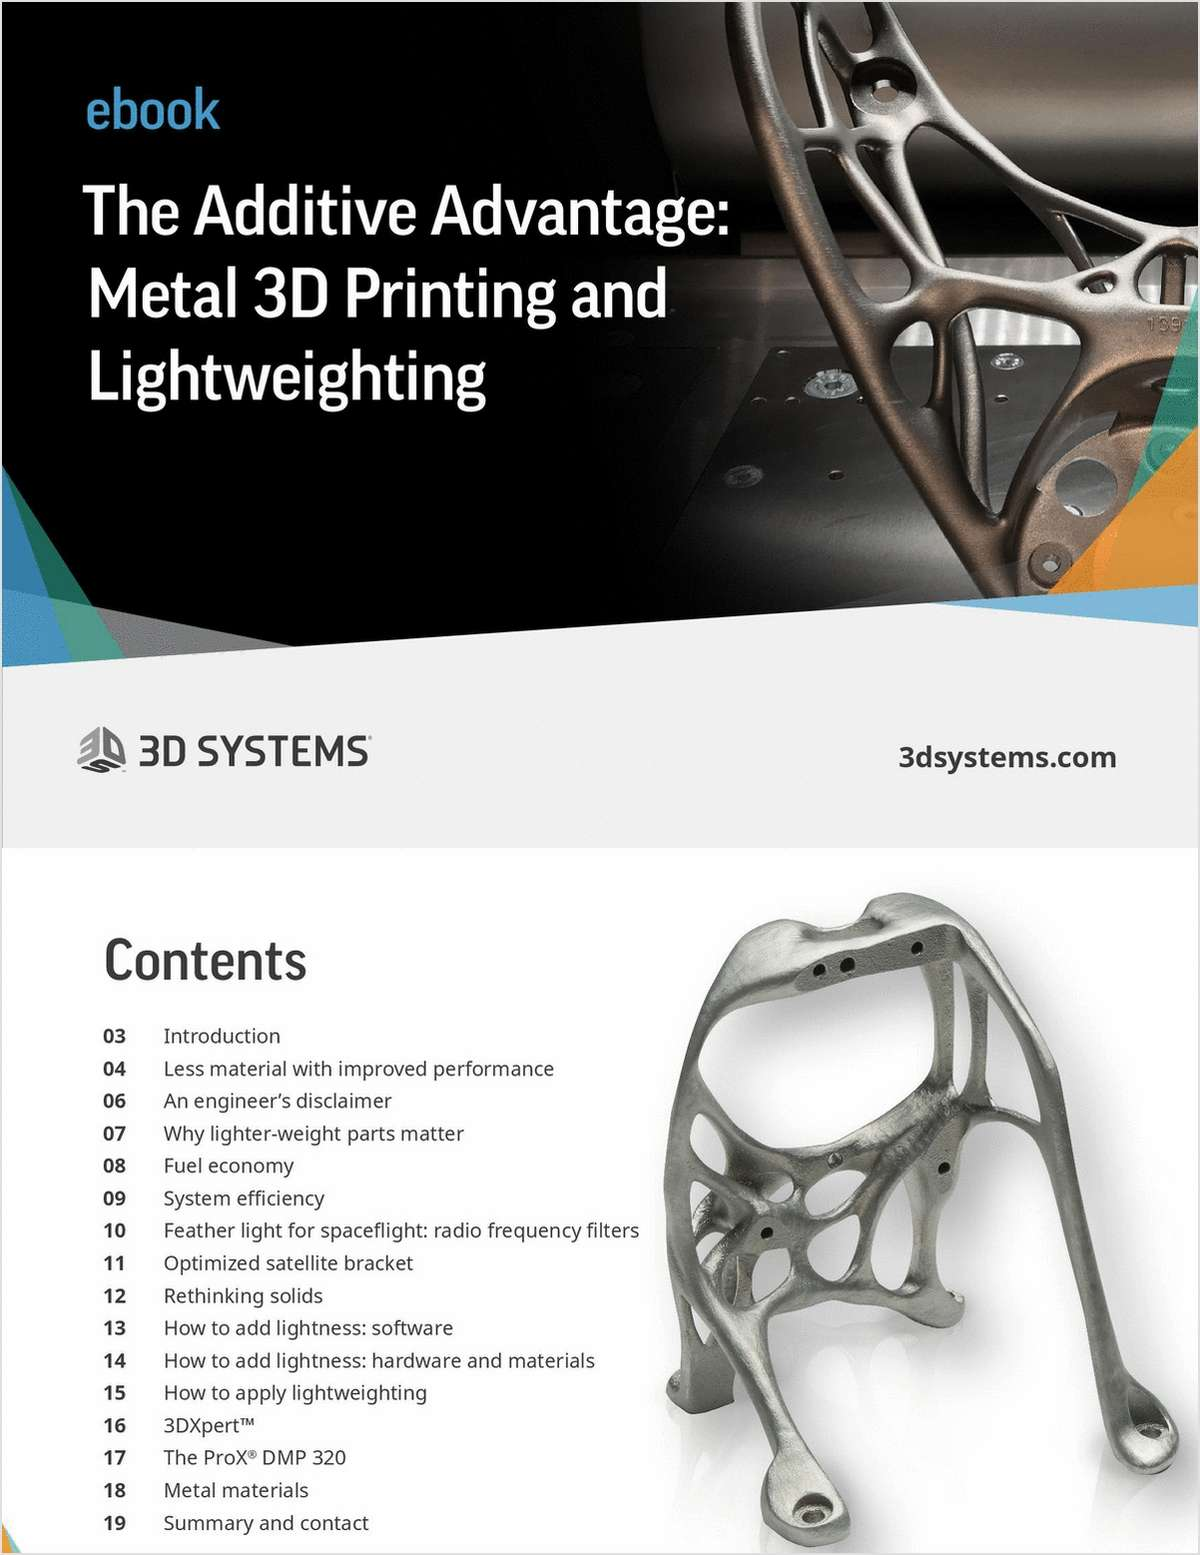 The Additive Advantage: Metal 3D Printing and Light-Weighting